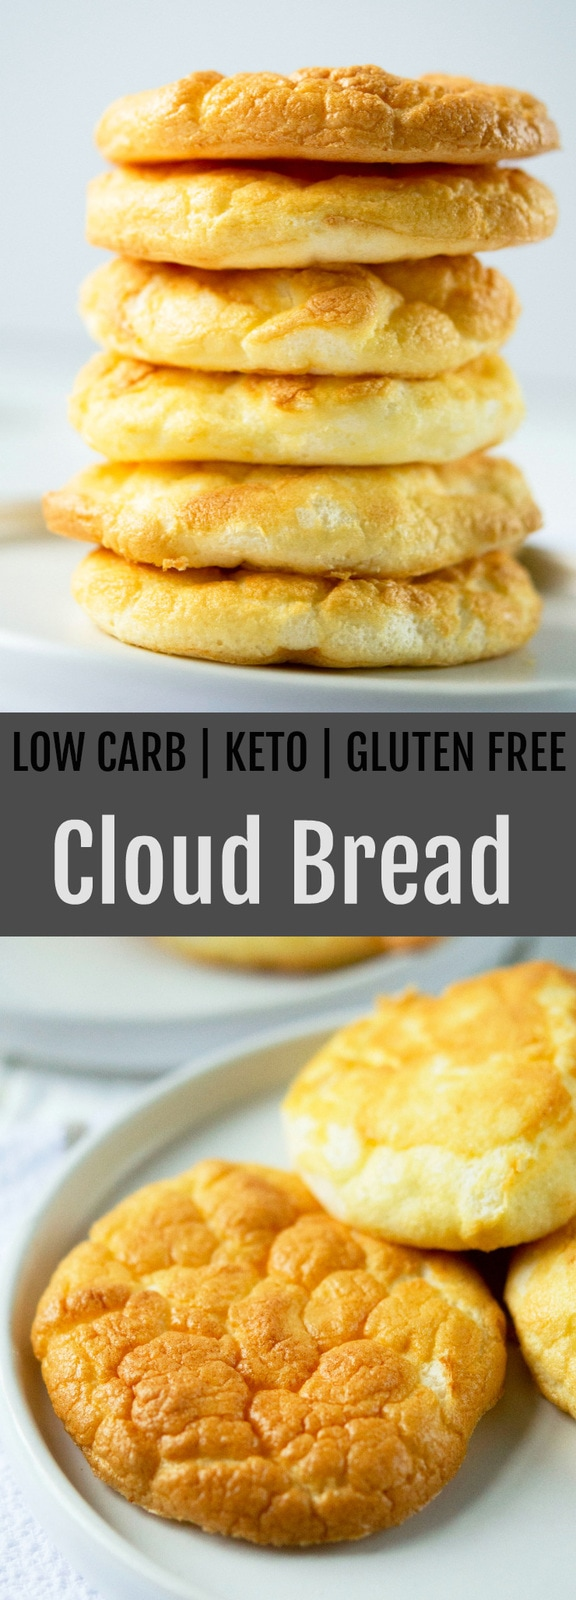 Low Carb Cloud Bread. This fluffy, cloud-like bread is just 4 ingredients. It is also low carb, gluten free, grain free and keto friendly.